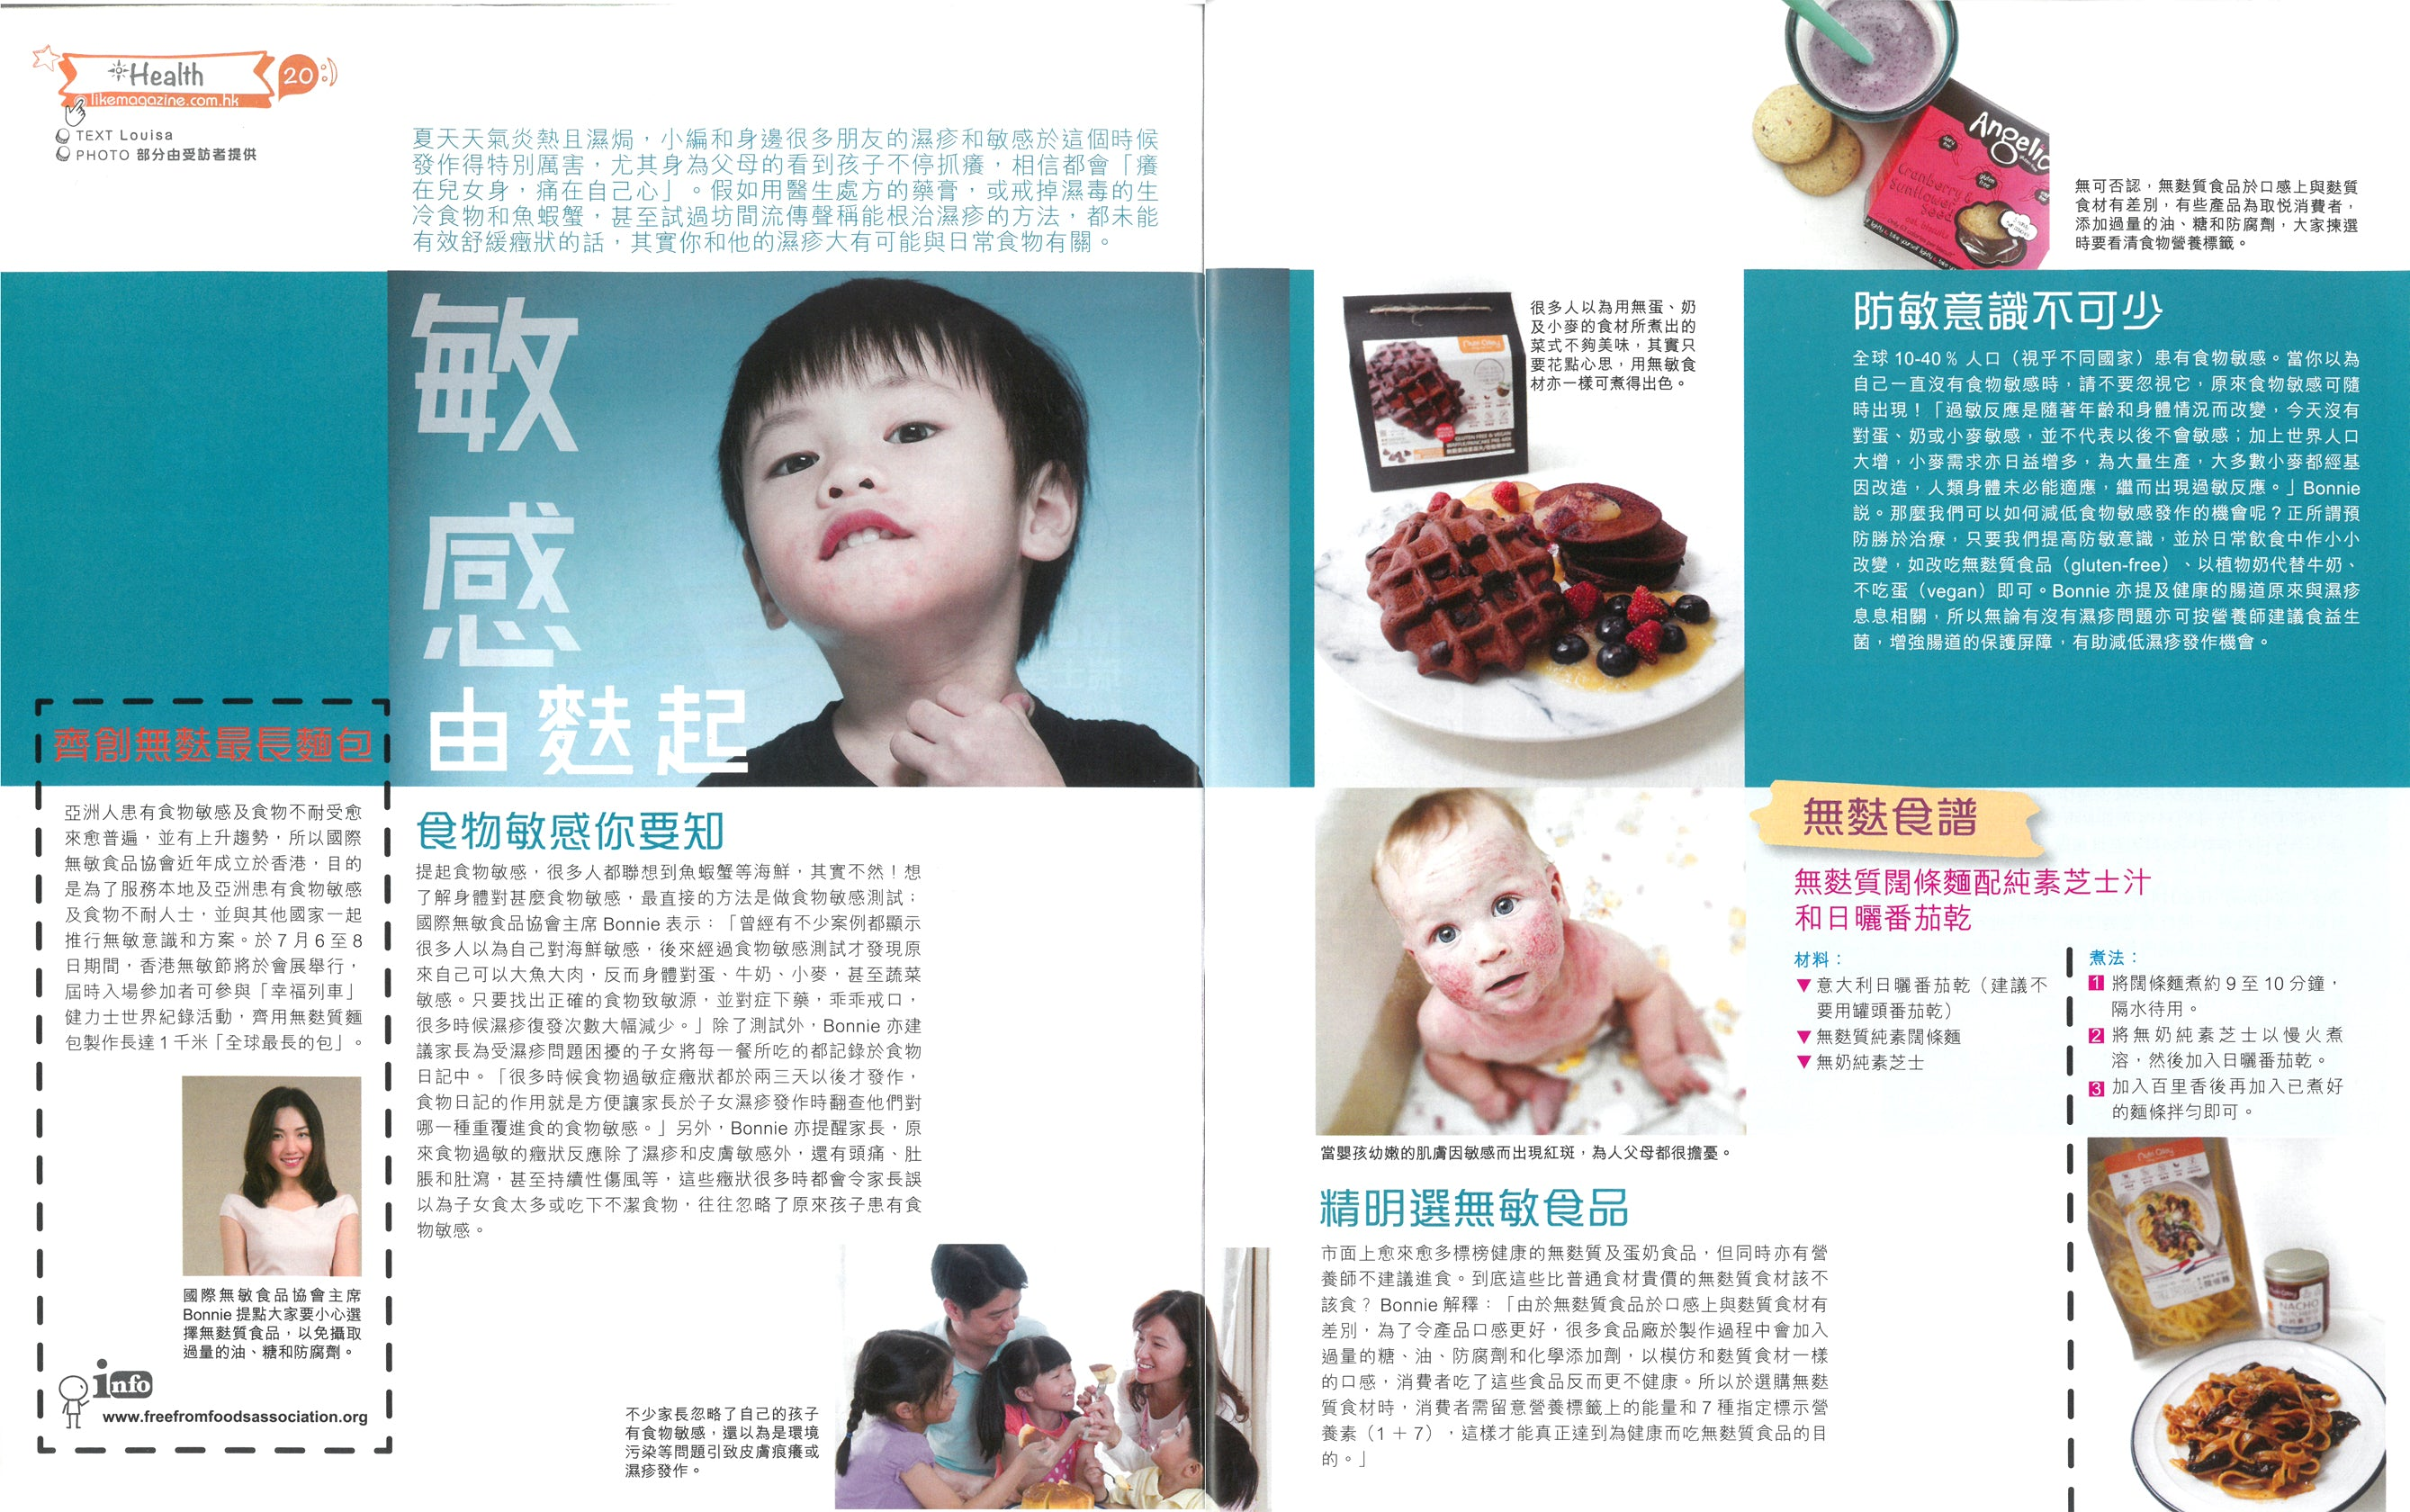 like magazine freefrom foods association eczema